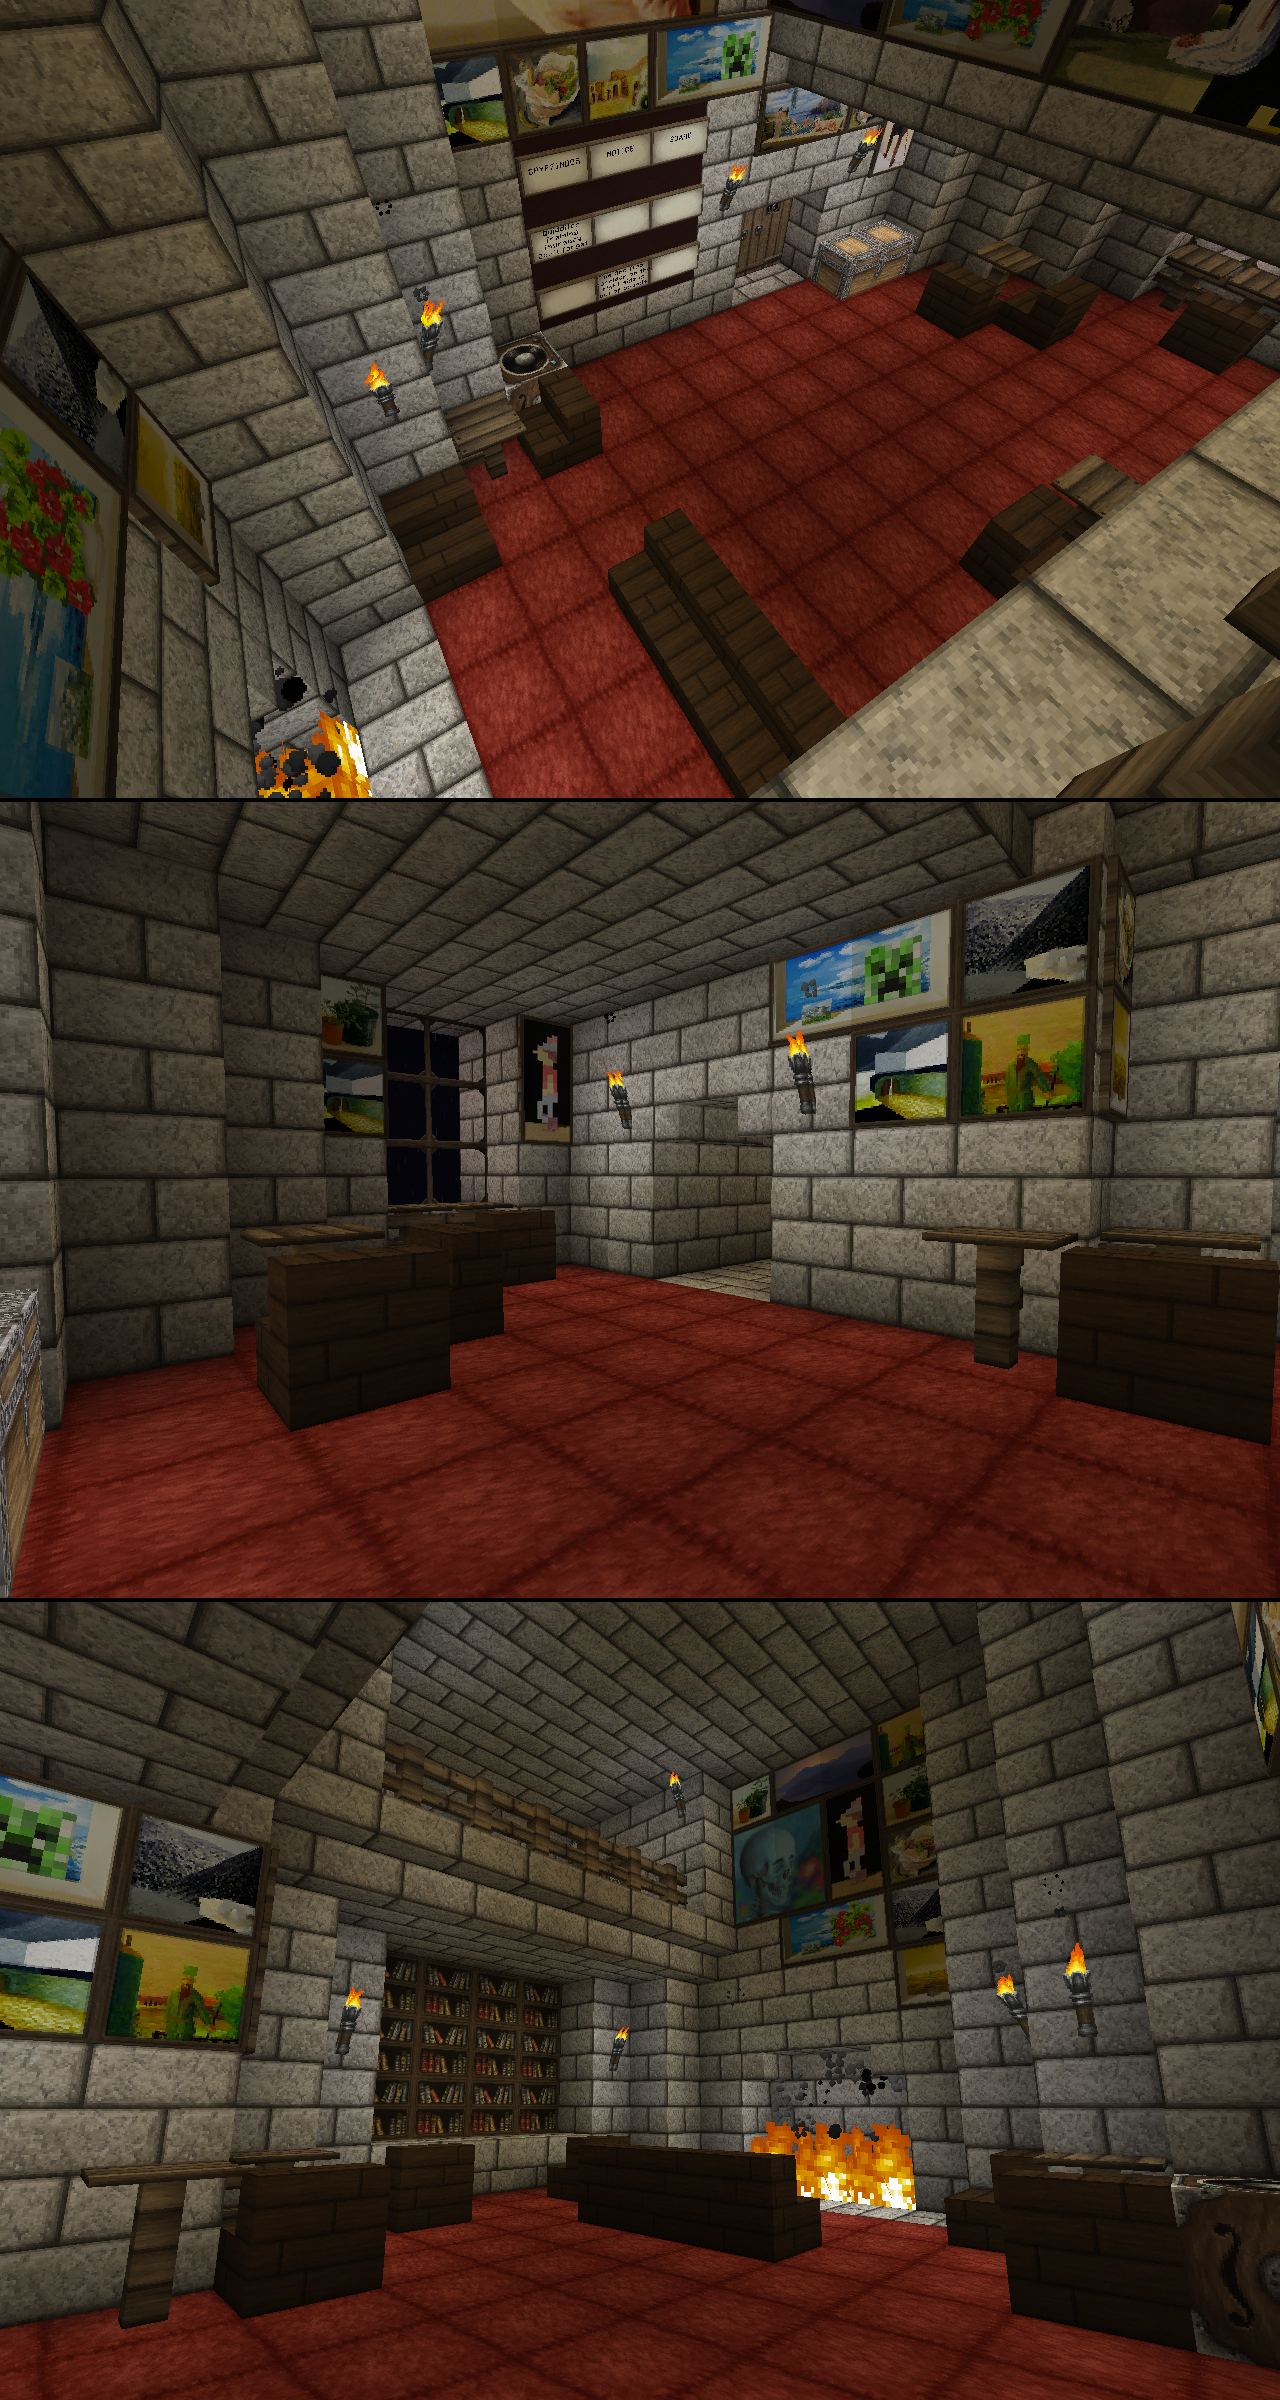 Gryffindor Common Room Minecraft An Inaccurate Hogwarts...